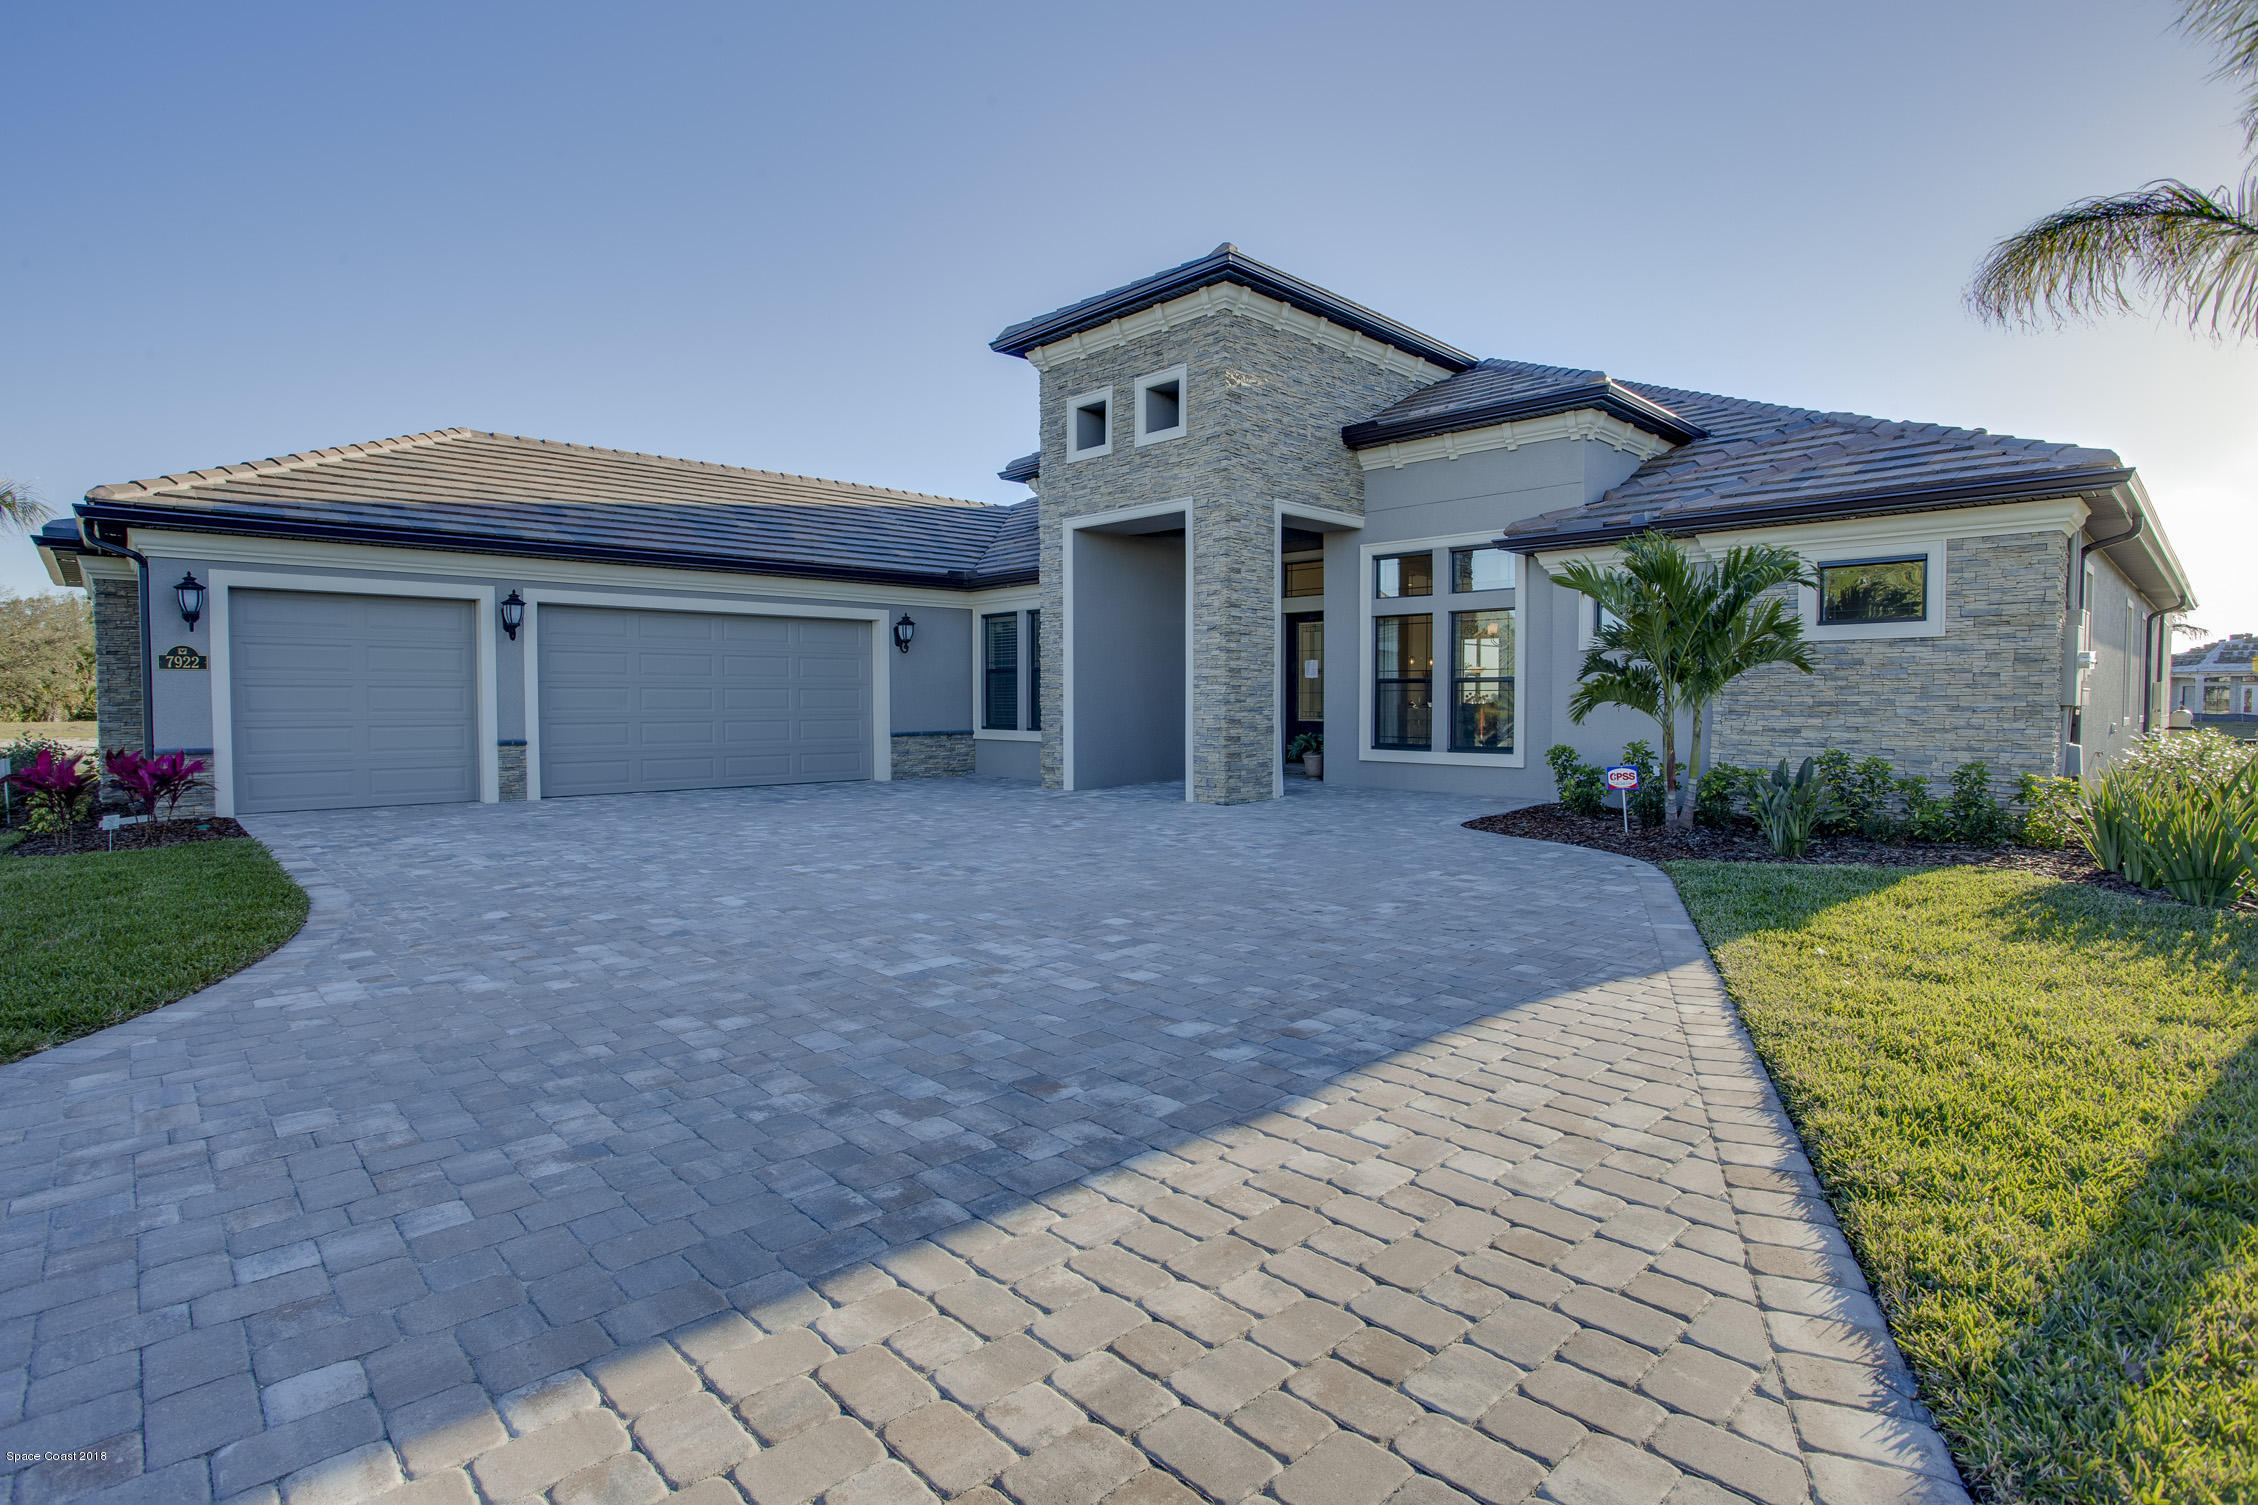 Single Family Home for Sale at 7922 Barrosa 7922 Barrosa Melbourne, Florida 32940 United States